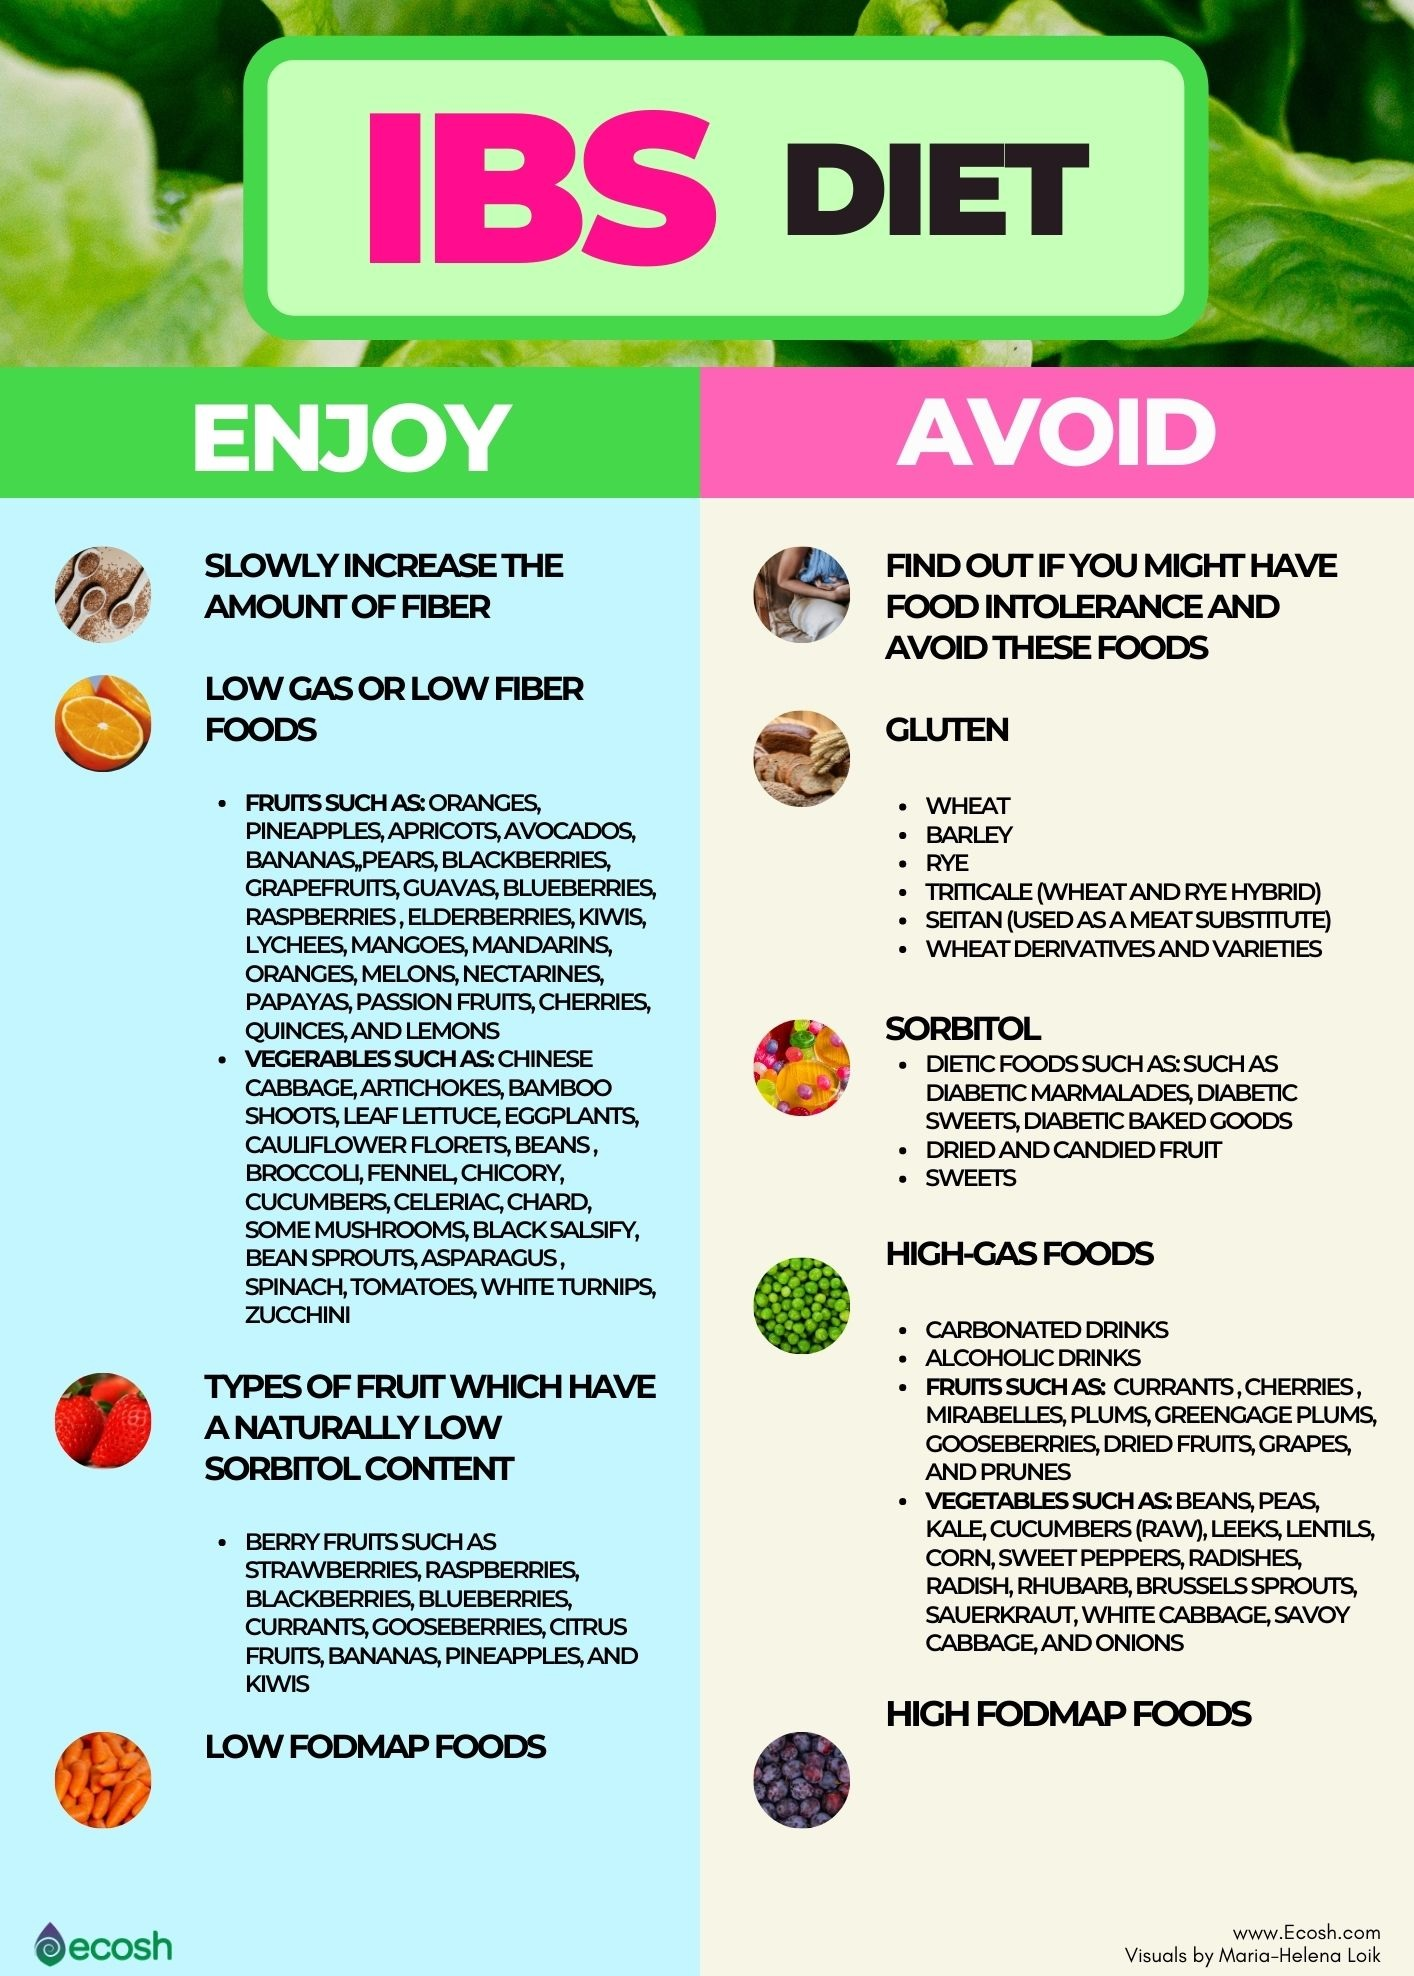 Ecosh_IBS_Diet_Inflammatory_Bowel_Syndrome_Diet_What_Foods_to_Eat_In_Case_of_IBS_Diet_for_IBS_Foods_For_IBS_IBS_Natural_Treatment_Avoid_Sorbitol_Natural_Remedies_For_IBS_